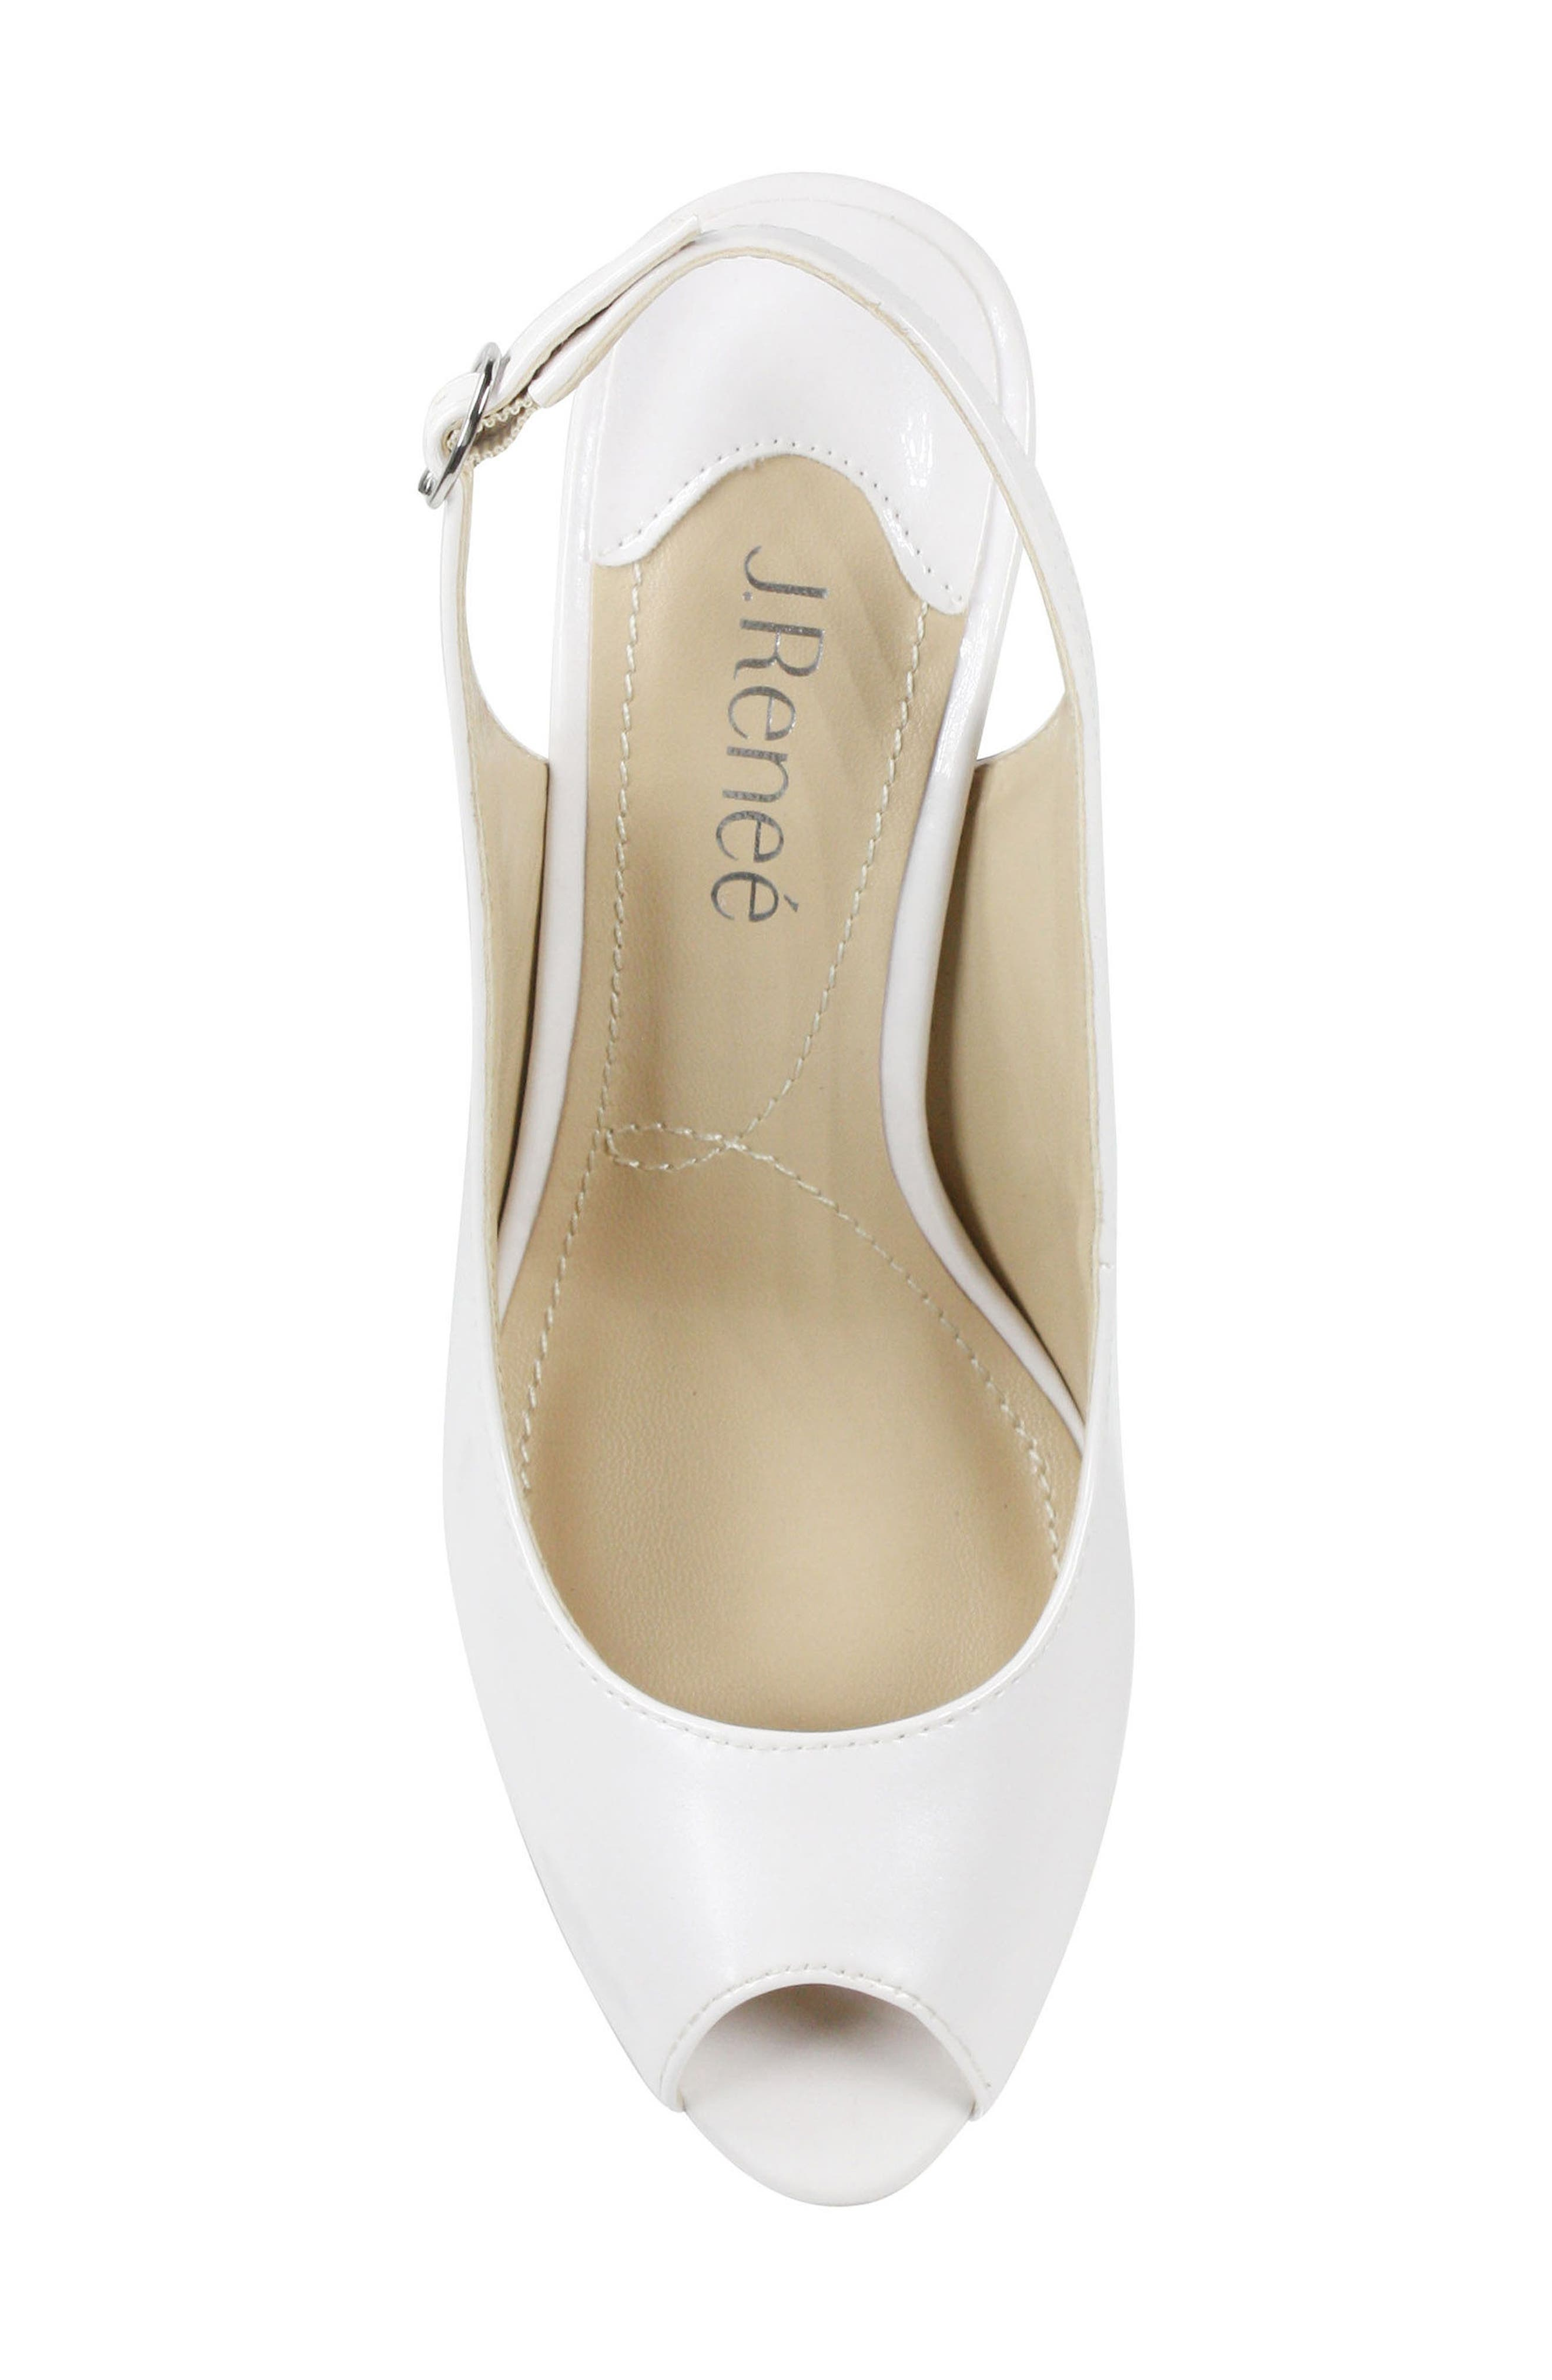 Onille Slingback Pump,                             Alternate thumbnail 5, color,                             Pearl White Faux Leather